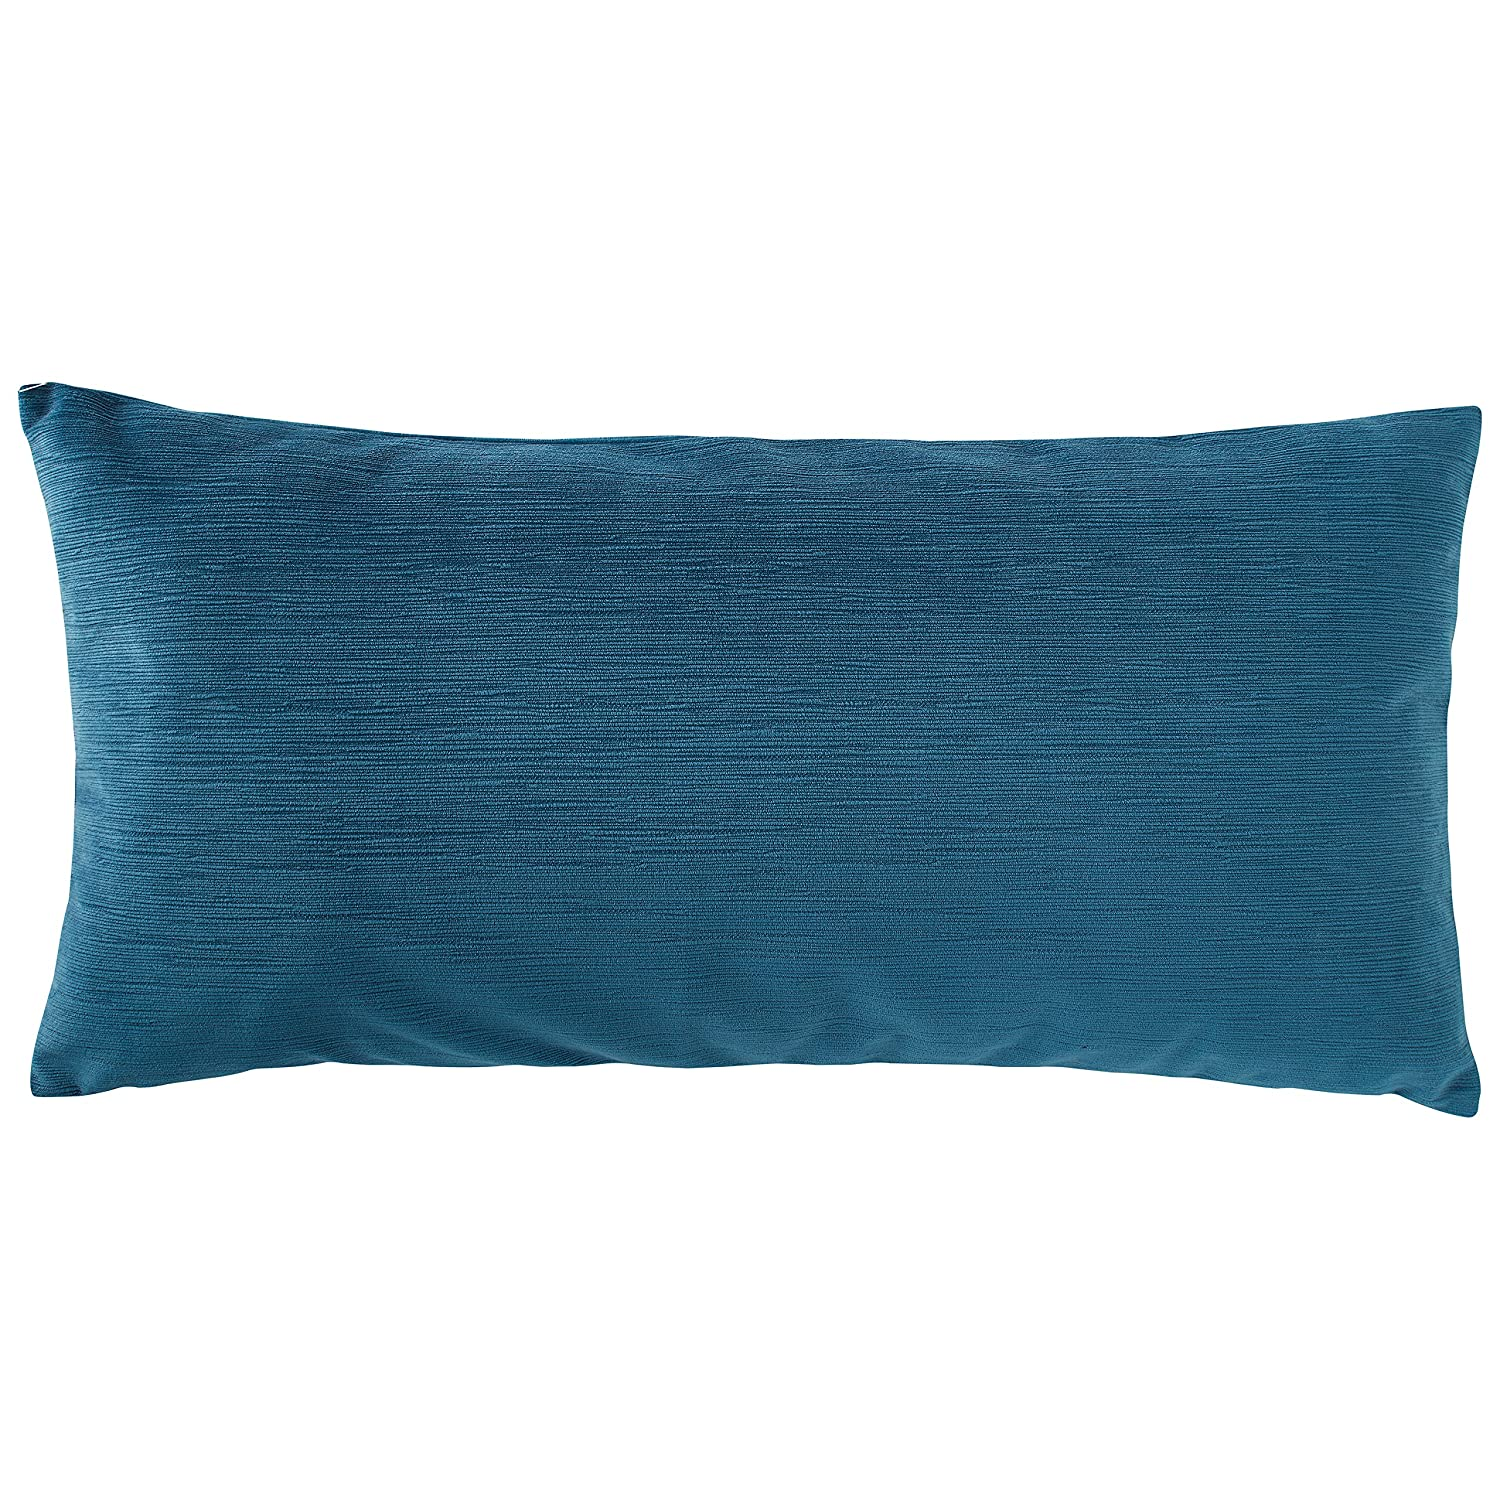 Rivet Velvet Texture Decorative Throw Pillow, 12 x 24 , Azure